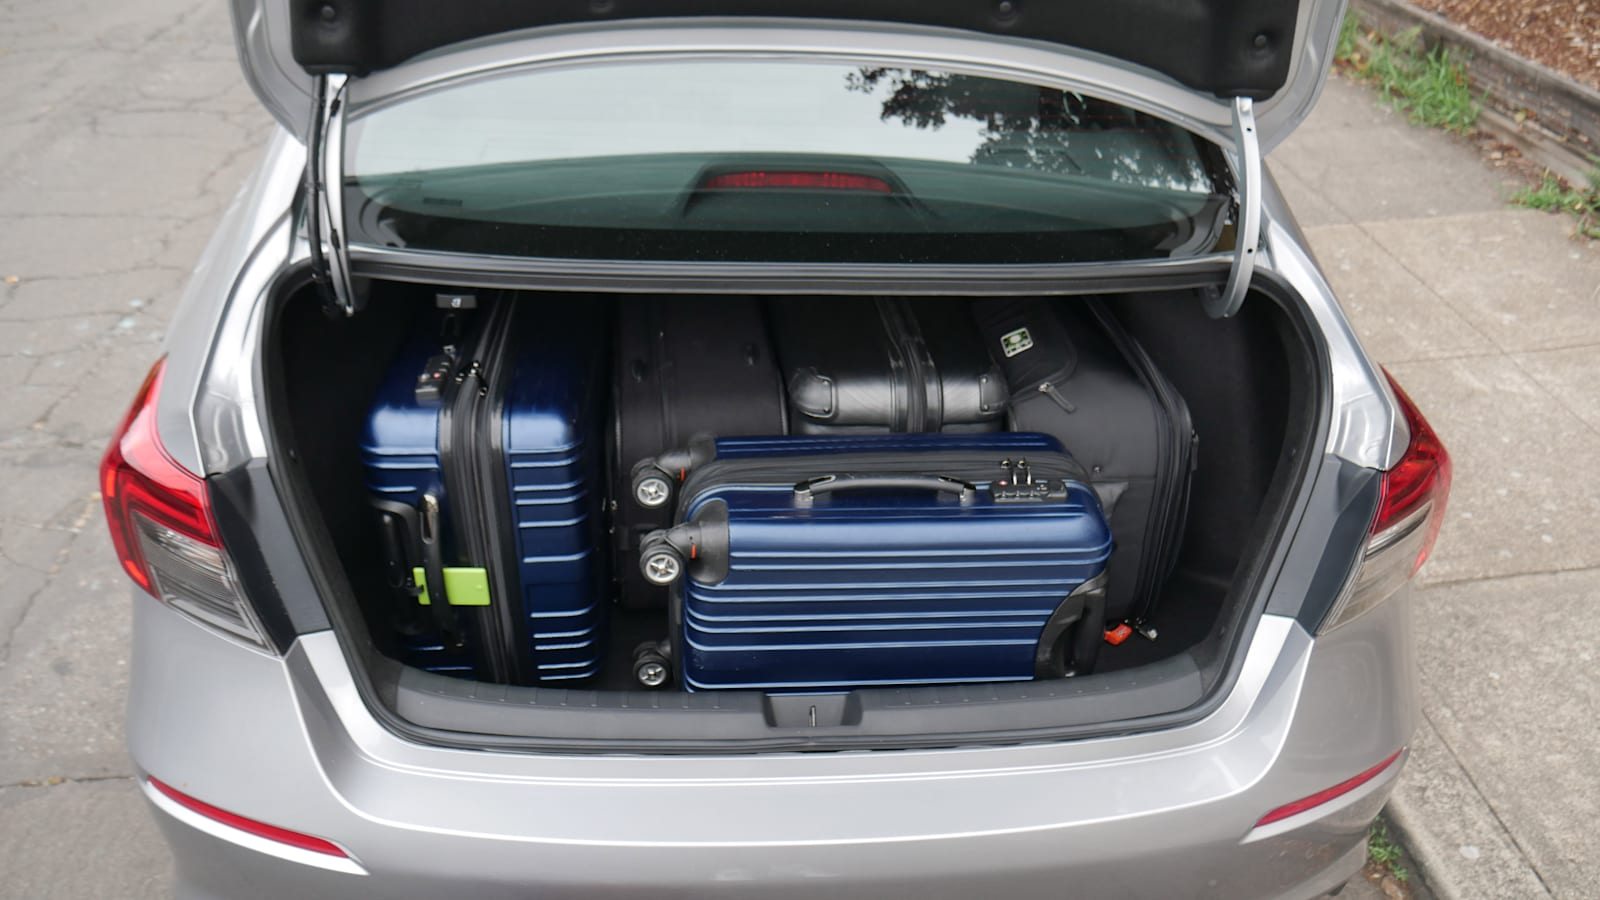 2022 Honda Civic Sport trunk with bags